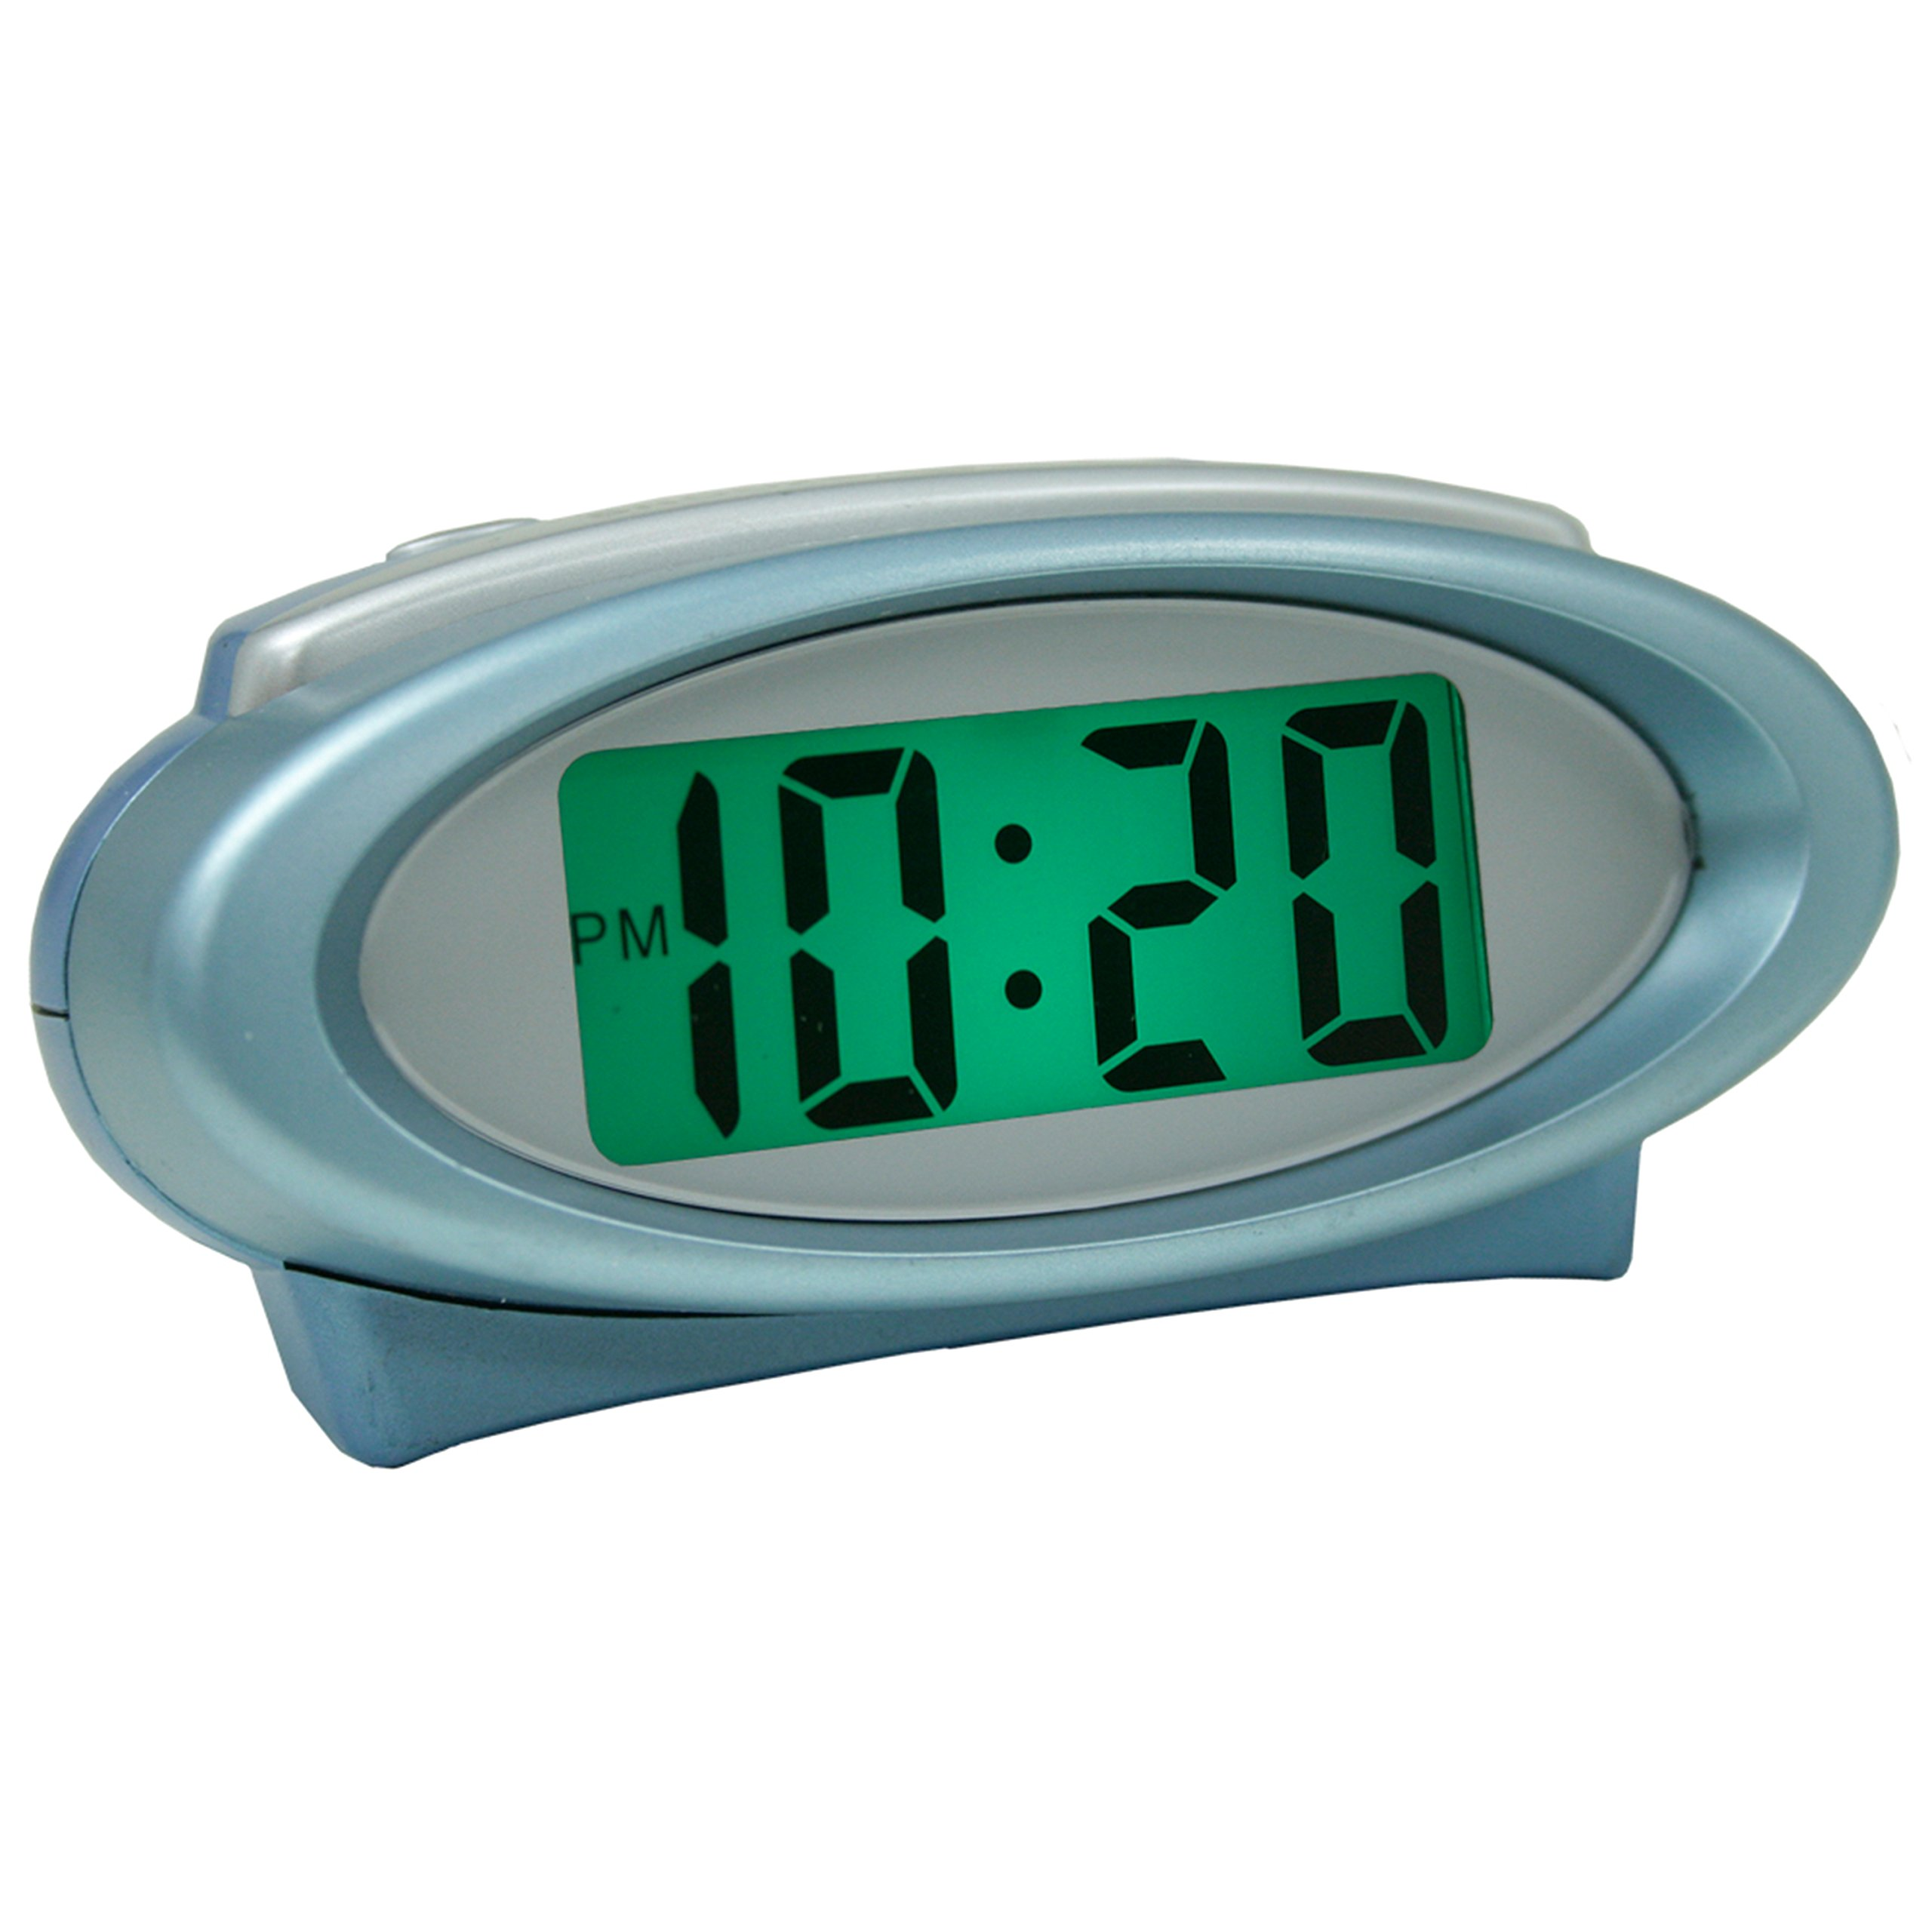 Equity by La Crosse 30330 Digital Alarm Clock with Night Vision Technology by Equity by La Crosse (Image #1)